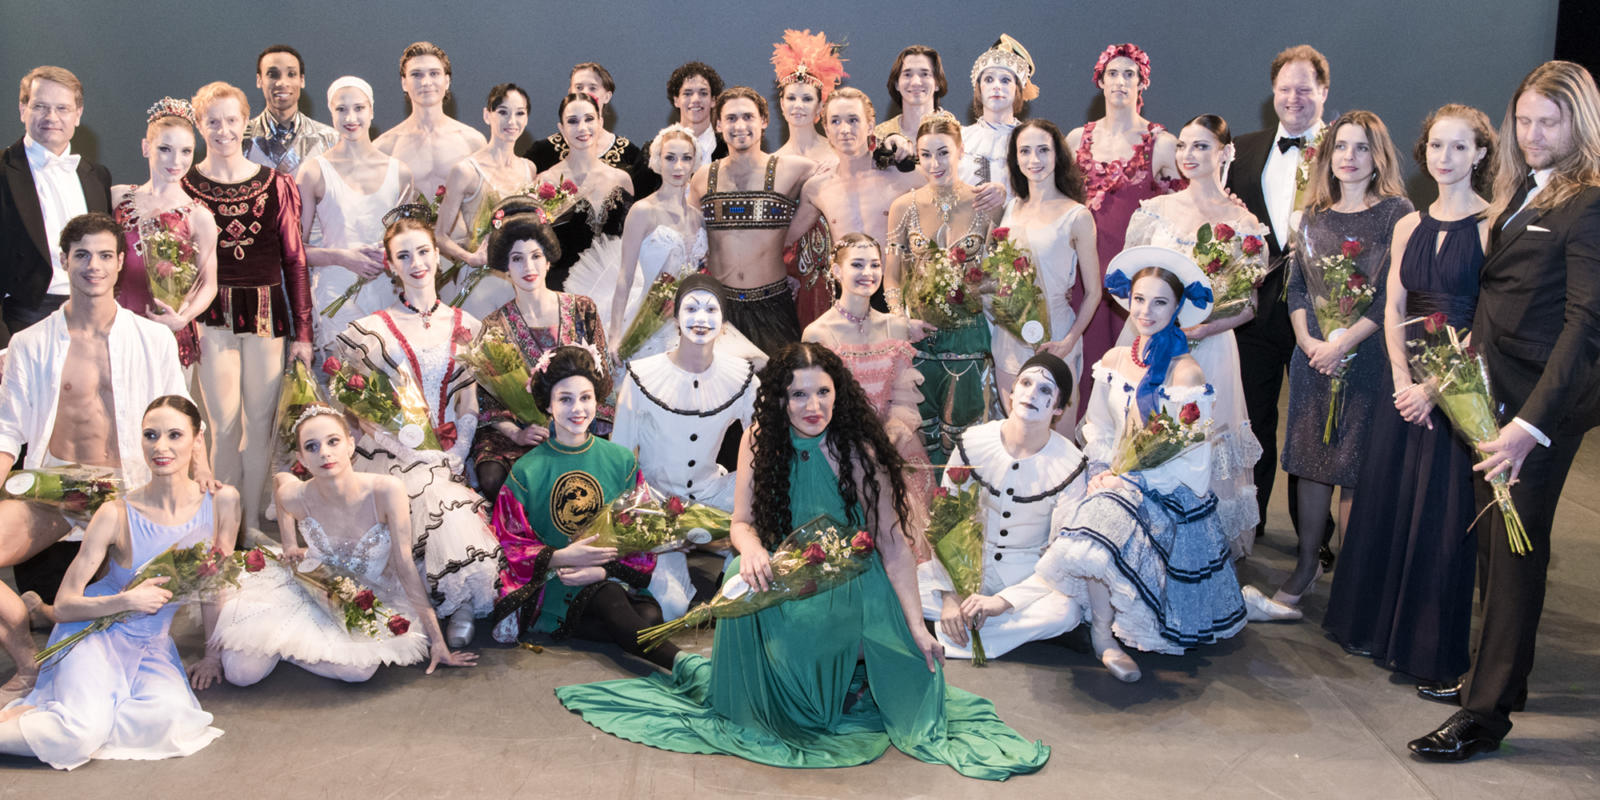 Performers from the Russian Ballet Icons Gala 2017 pose for a company photograph